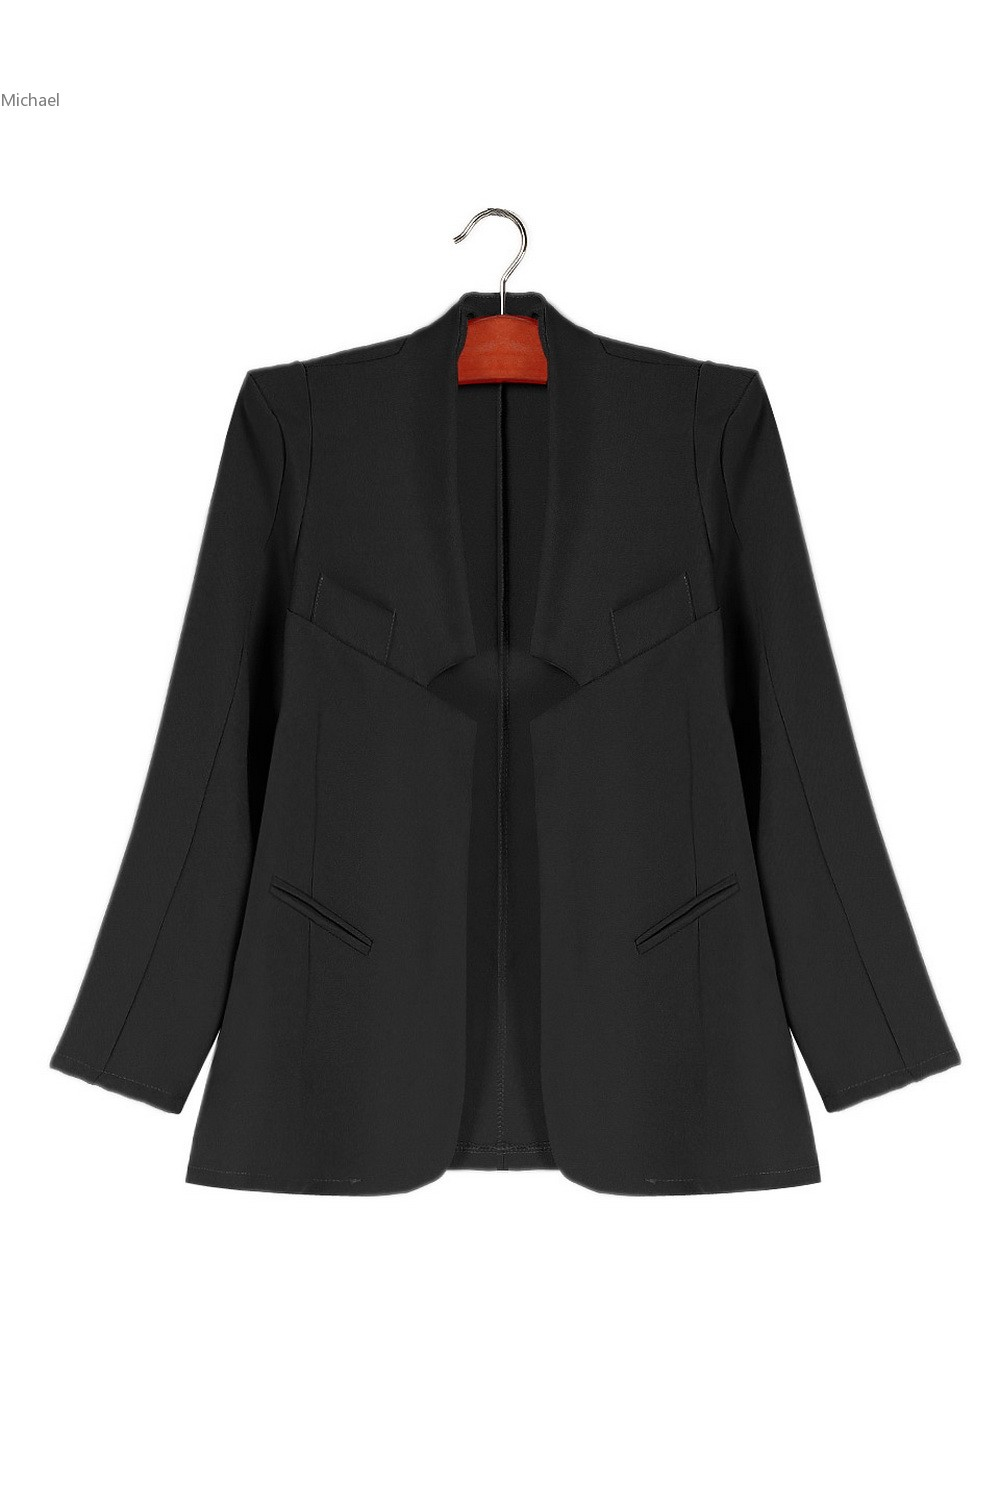 New Arrival Blazer Women Slim Suit Jacket Plus Size Casual Coat Women Blazers And Jackets With Shoulder Pad 51